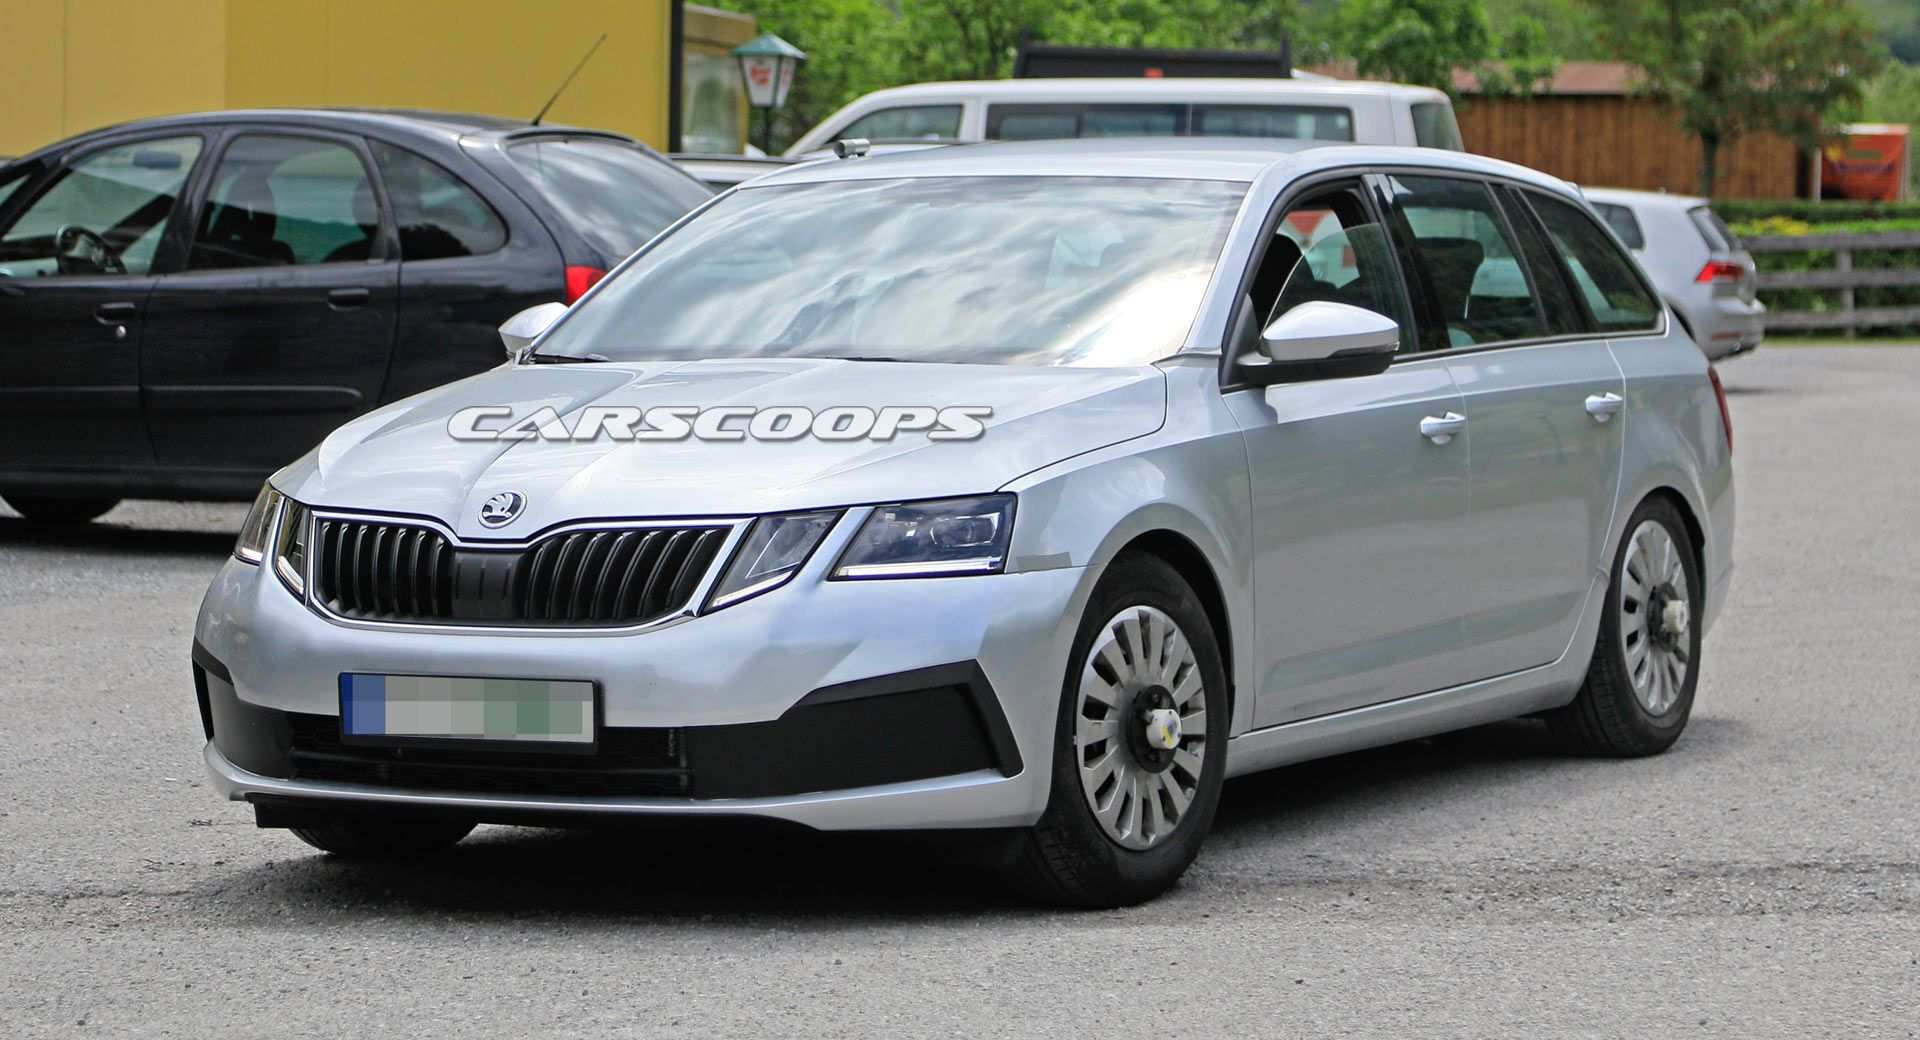 32 Best Review 2020 Skoda Superb Specs by 2020 Skoda Superb